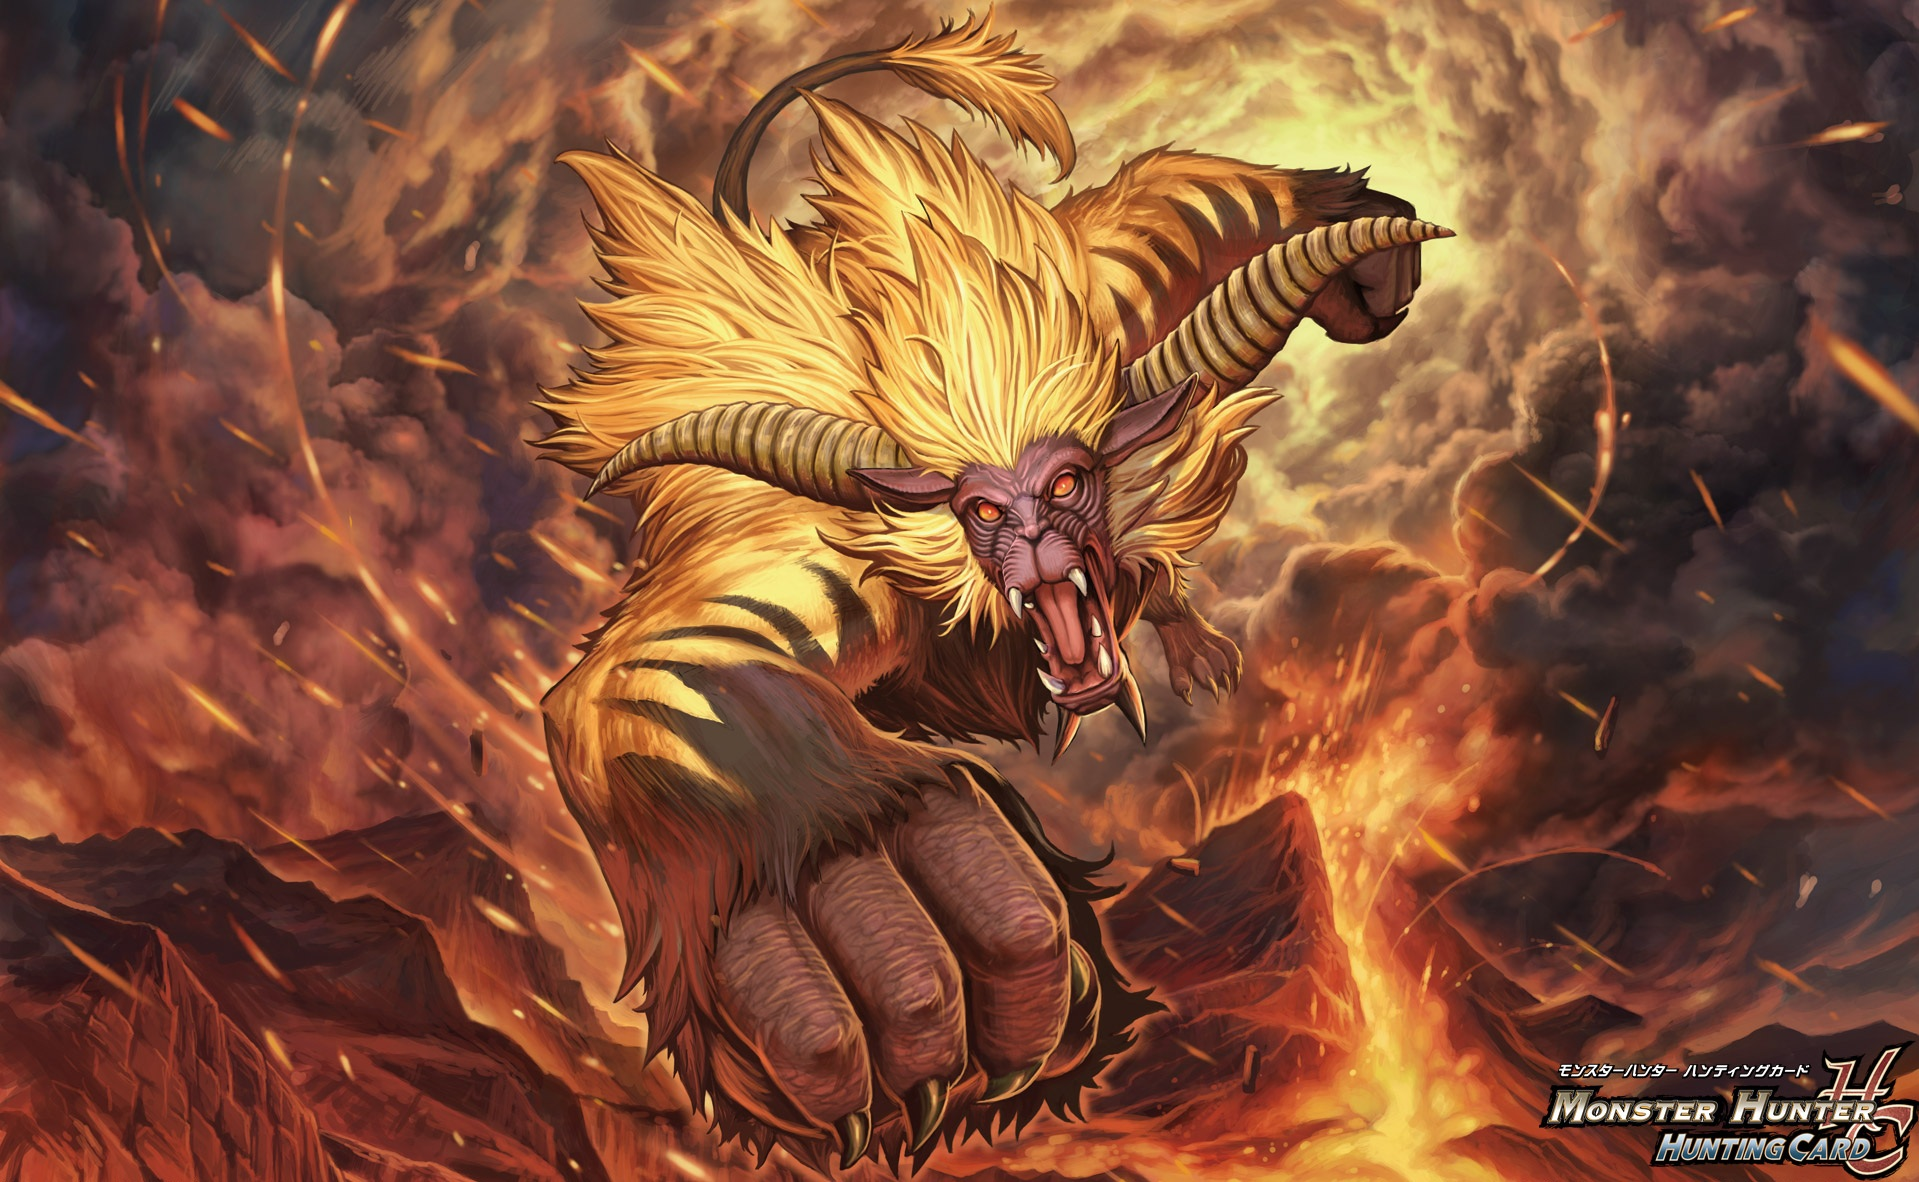 Background Images Wallpaper Abyss: 2 Rajang (Monster Hunter) HD Wallpapers